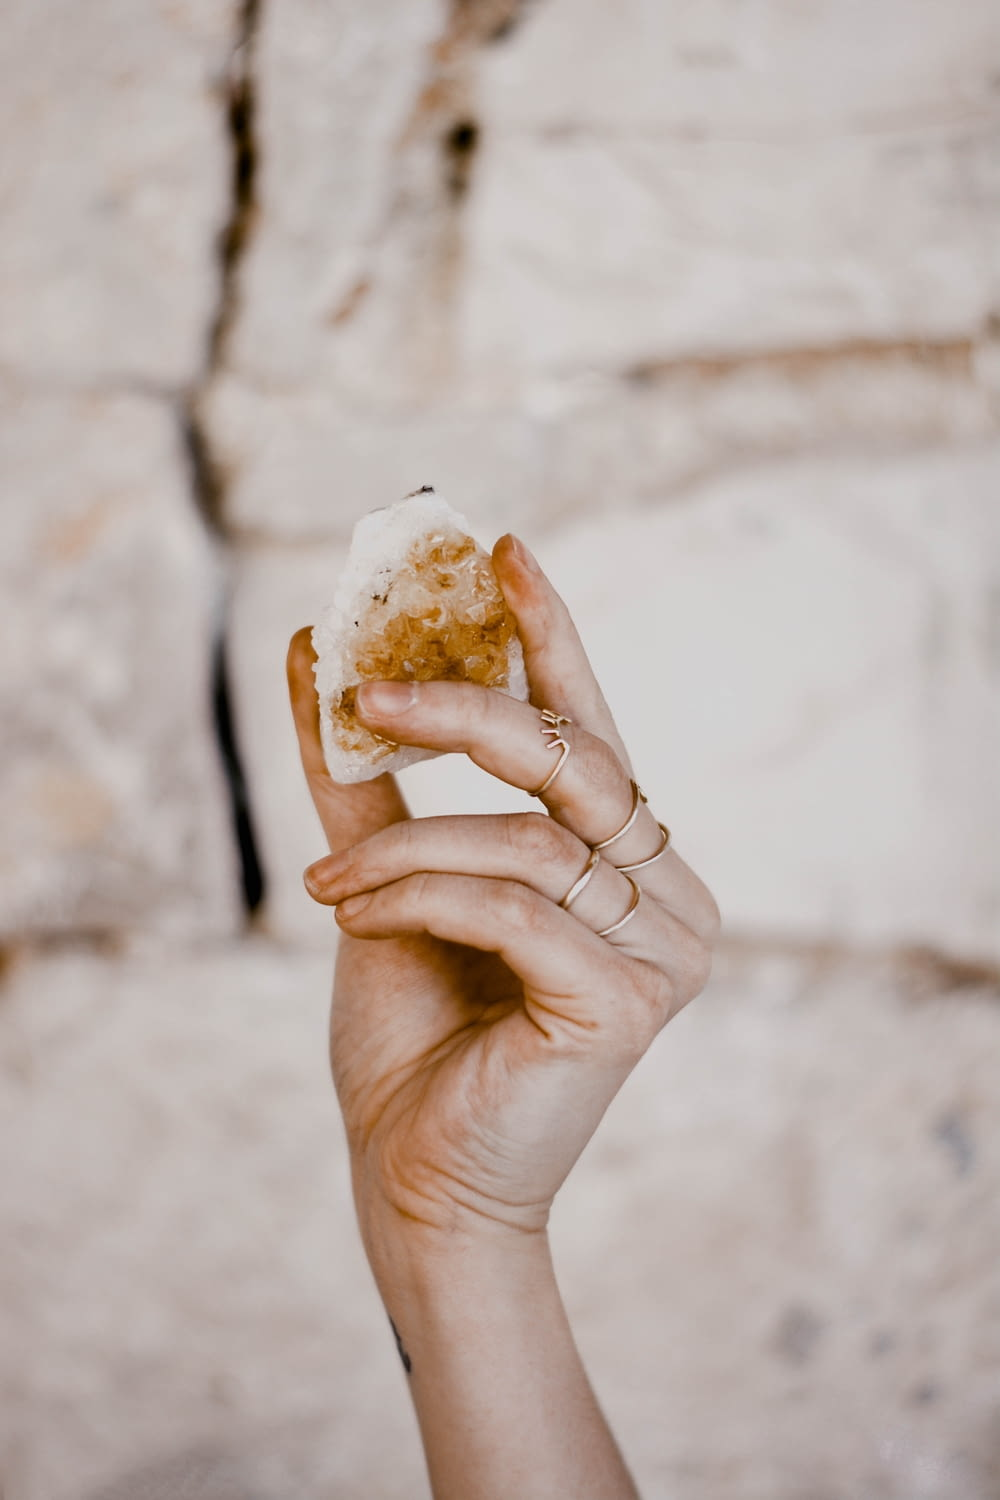 person holding bread with cheese